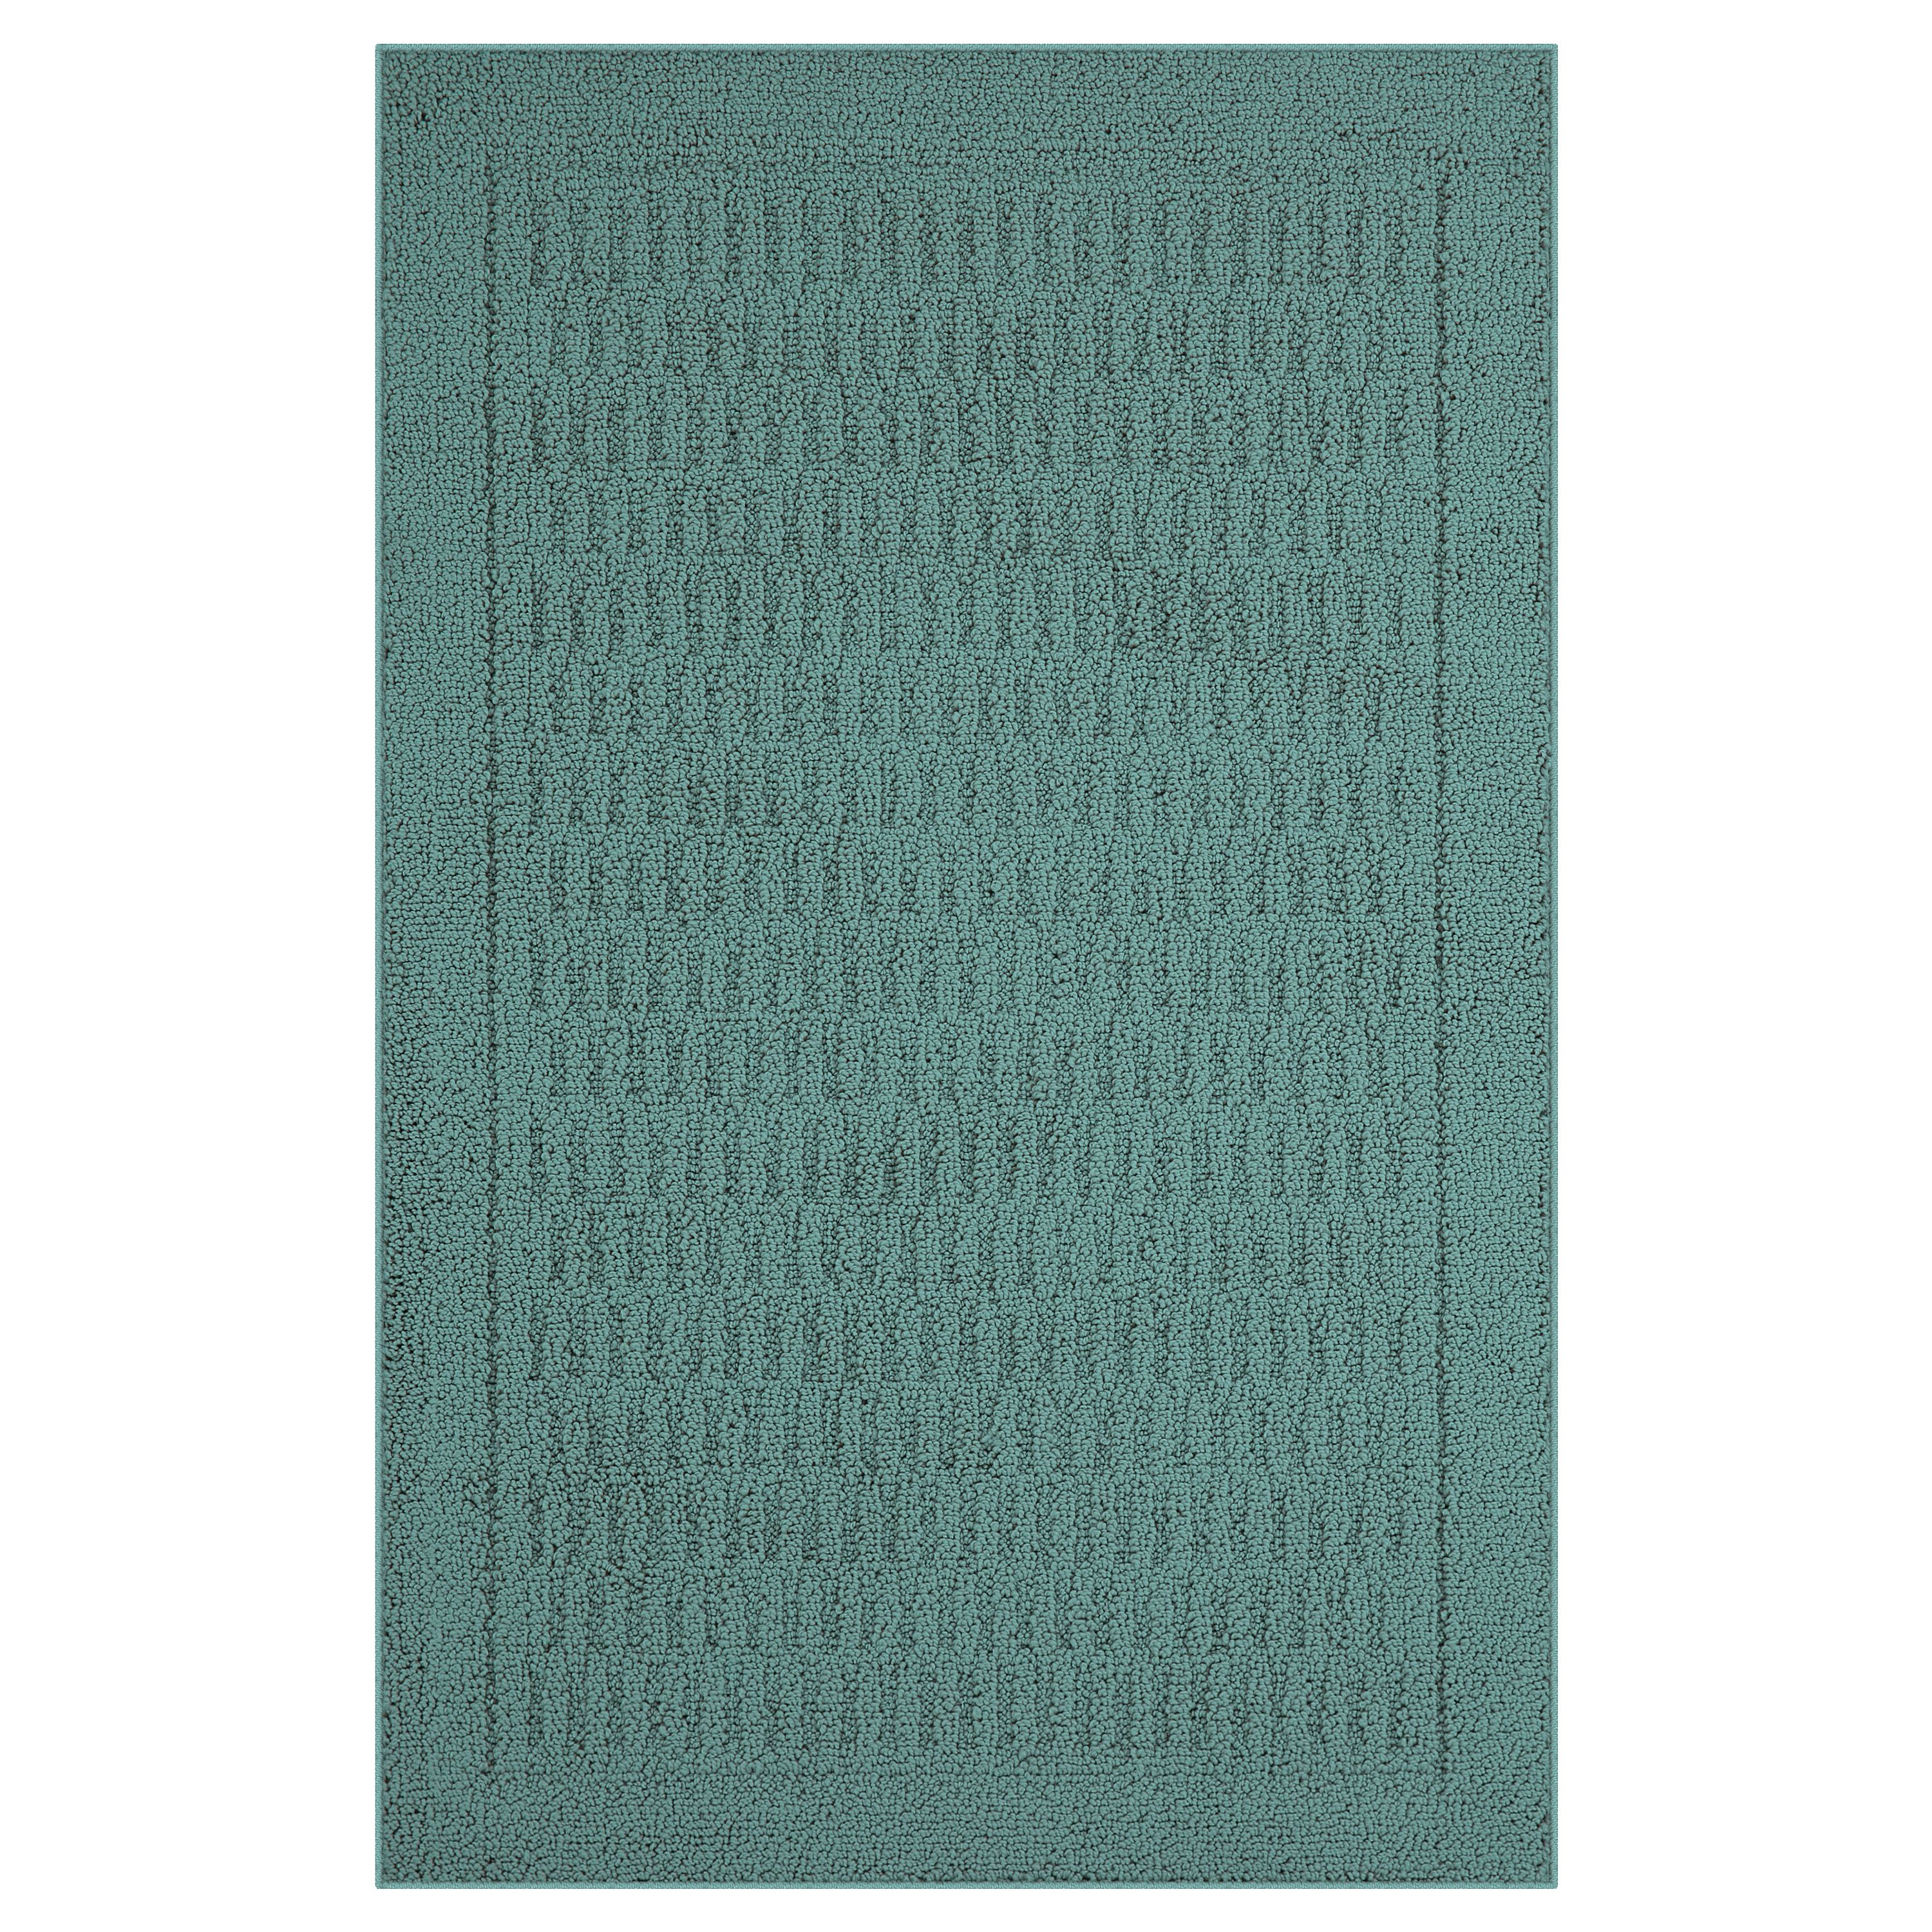 Mainstays Dylan Polyester Area Rug or Runner Collection, Multiple Sizes and Colors